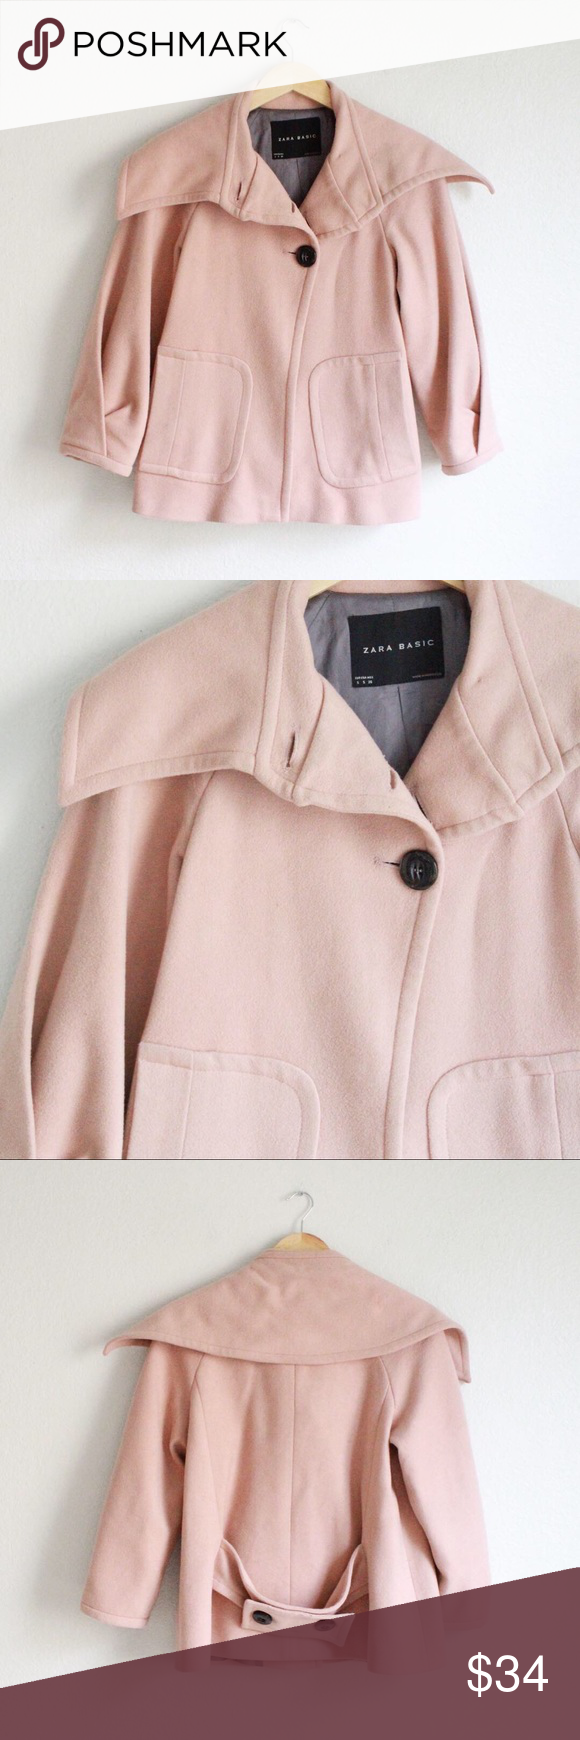 4e7bf4b55 Zara Basics light pink wool jacket! Awesome Zara Basics light pink ...